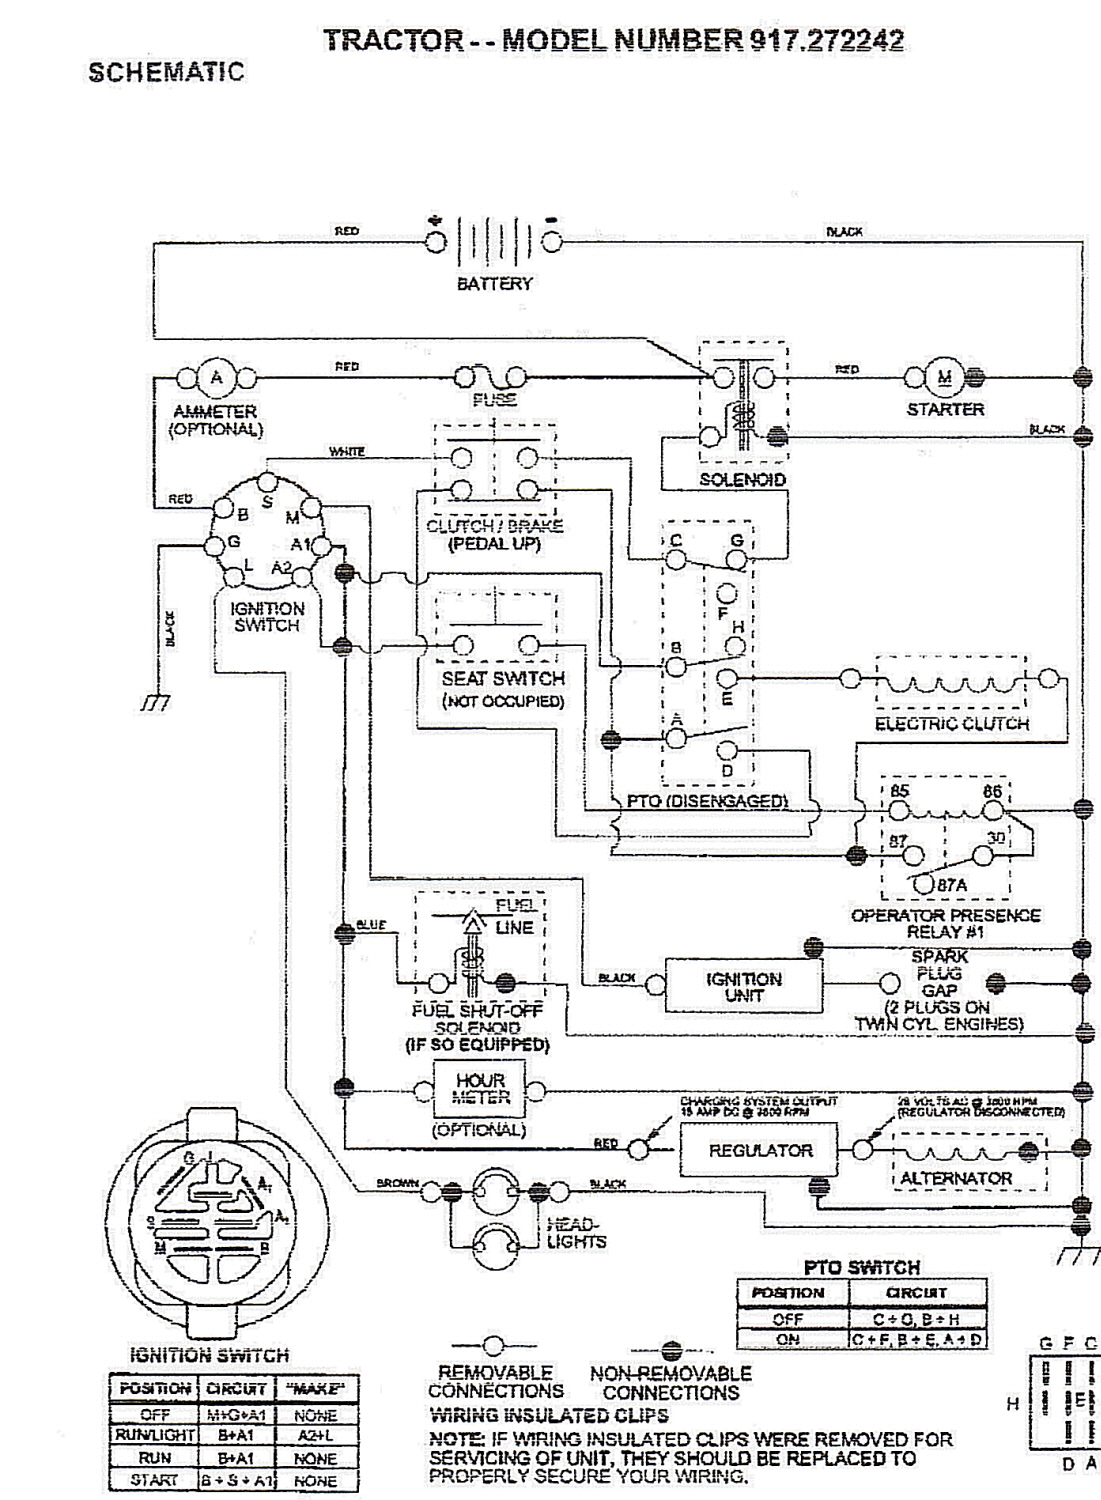 Briggs Strortton Mowers Wire Harness Diagram - Wiring Diagram Detailed - Briggs And Stratton Wiring Diagram